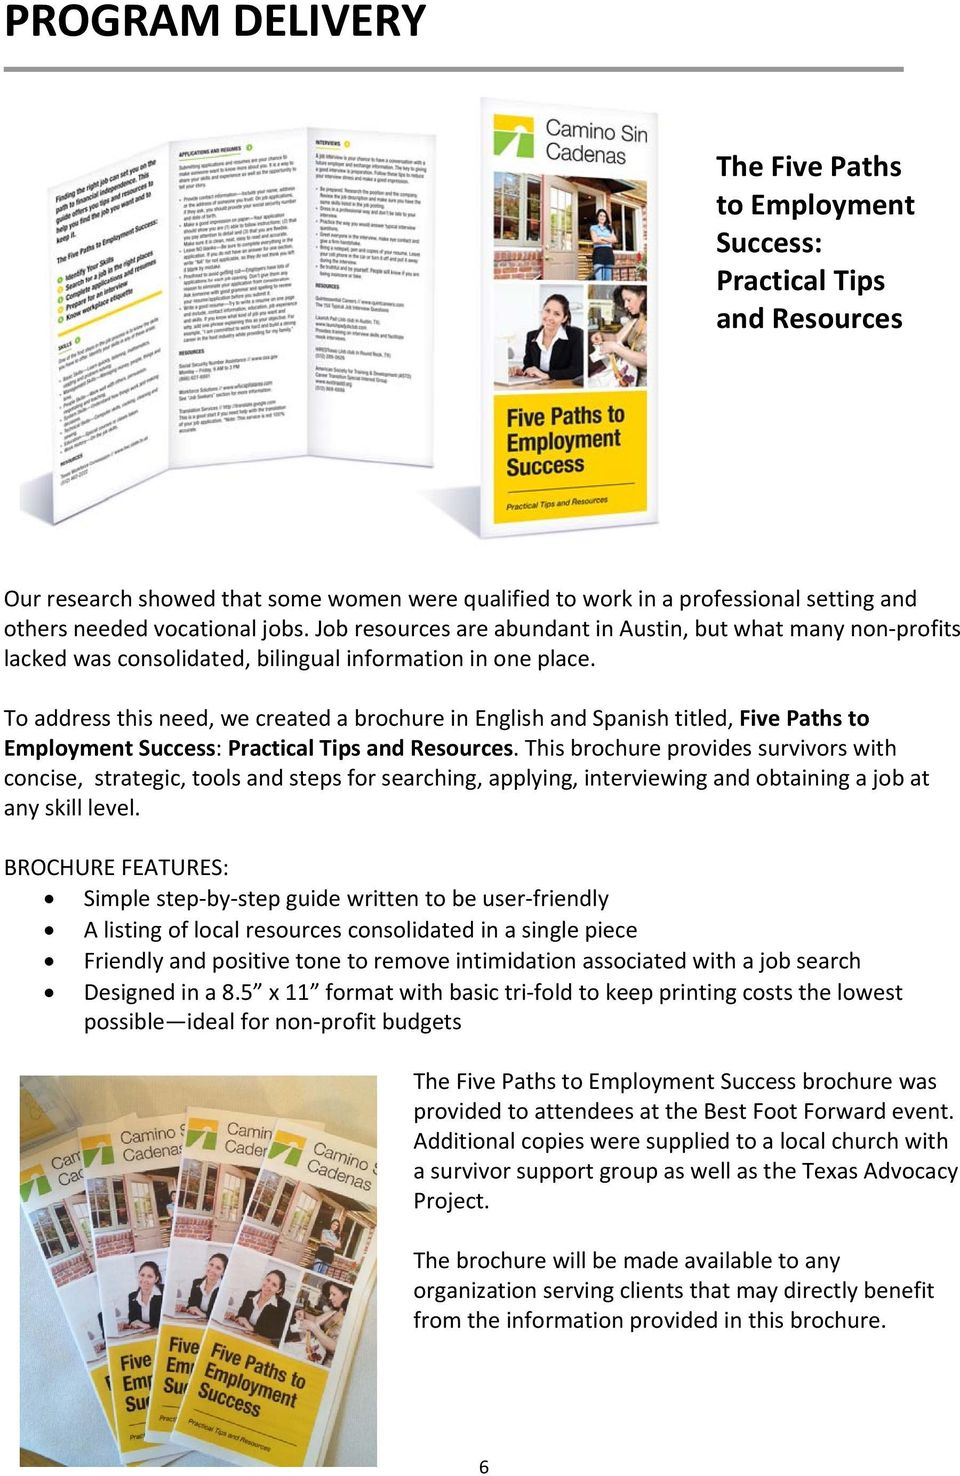 To address this need, we created a brochure in English and Spanish titled, Five Paths to Employment Success: Practical Tips and Resources.